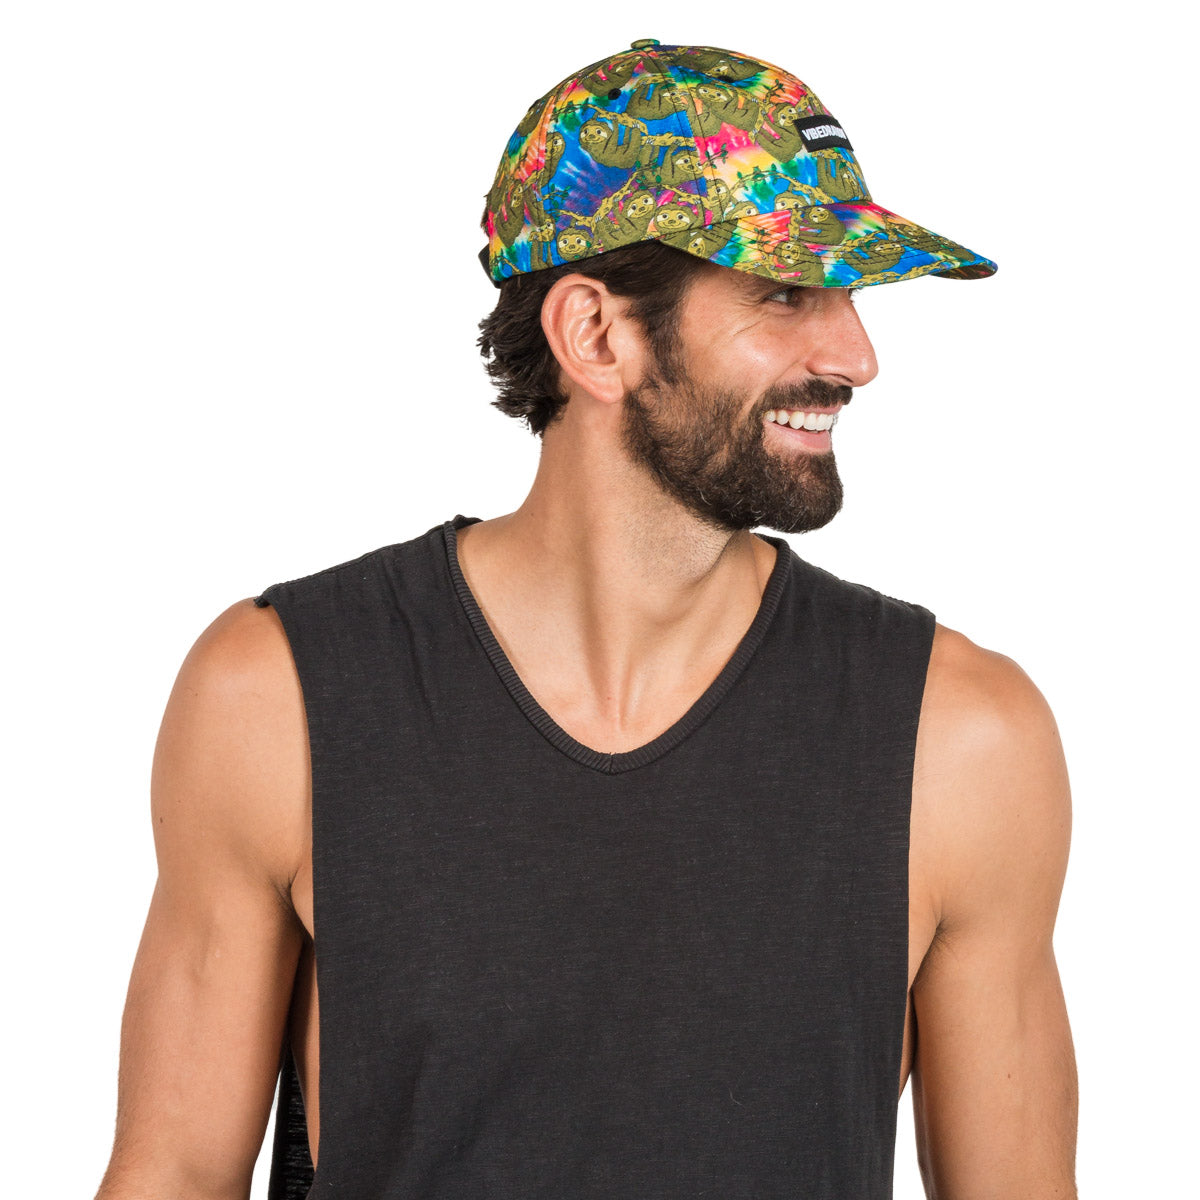 Adjustable Tie-Dye Sloth Printed Hat